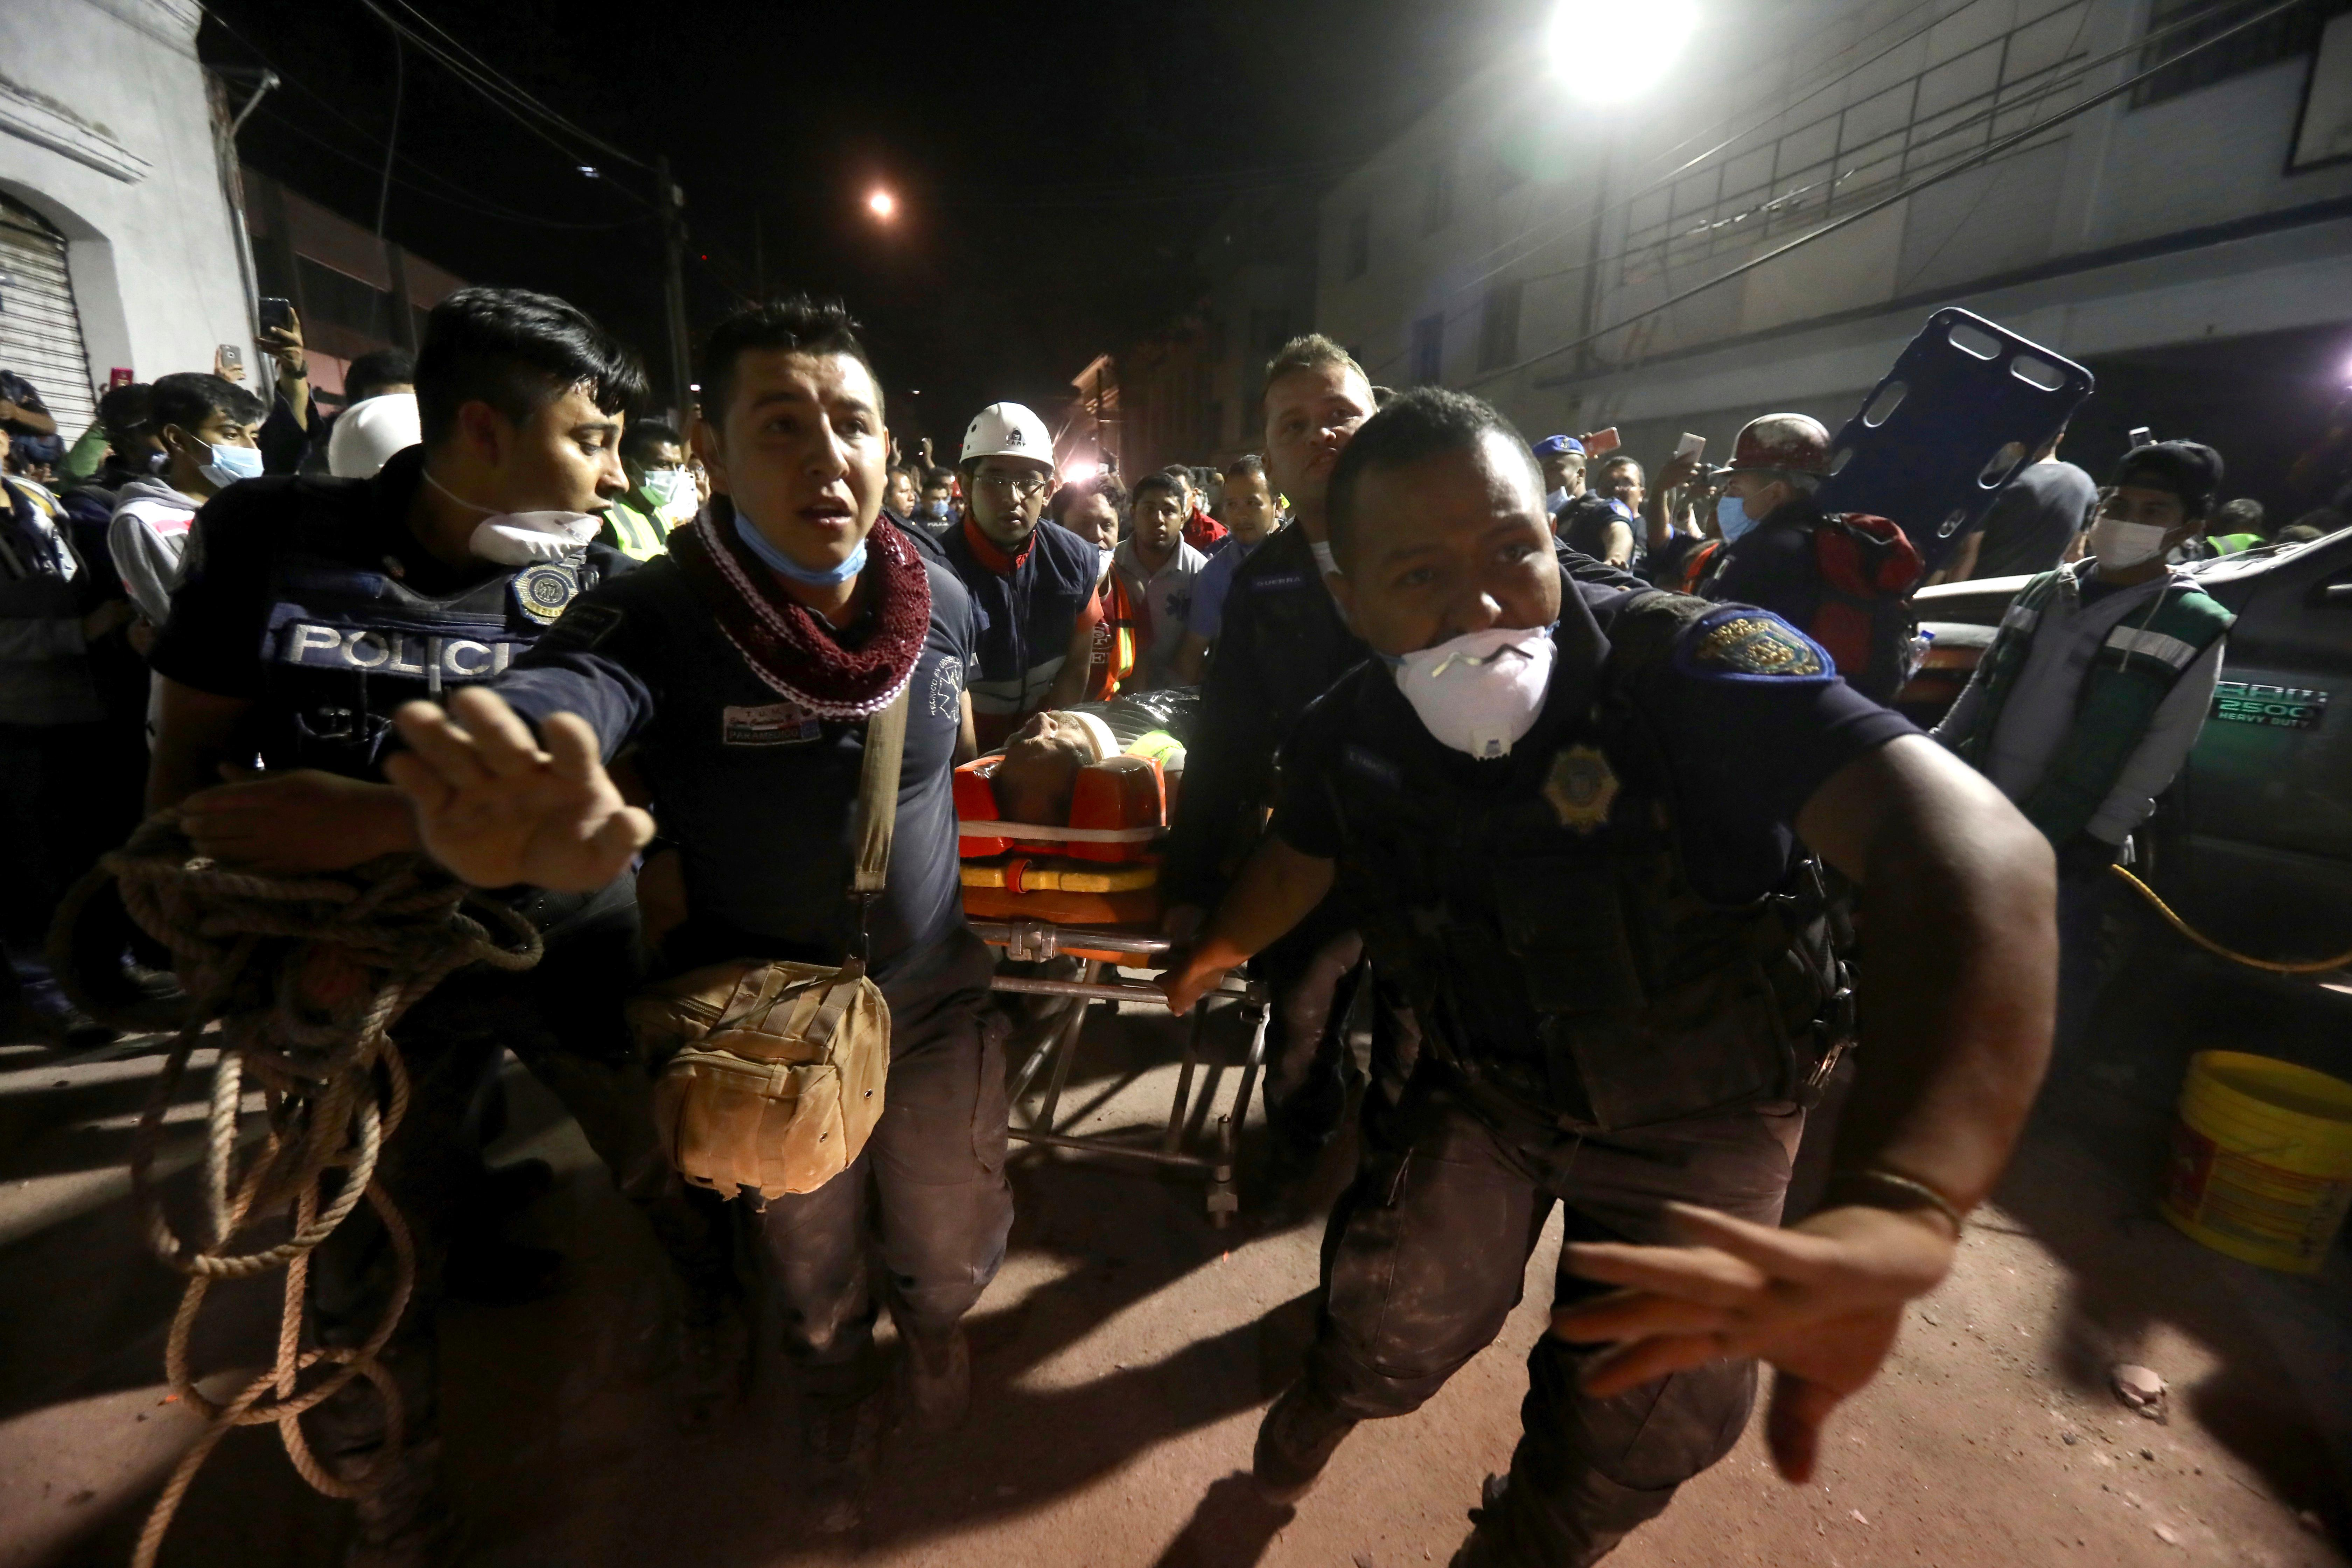 Emergency personnel rush past with a gurney carrying a victim rescued from the rubble of a building that collapsed during a 7.1 earthquake, in the Colonia Obrera neighborhood of Mexico City, Tuesday, Sept. 19, 2017. People across central Mexico already had rallied to help their neighbors as dozens of buildings tumbled into mounds of broken concrete. (AP Photo/Miguel Tovar)